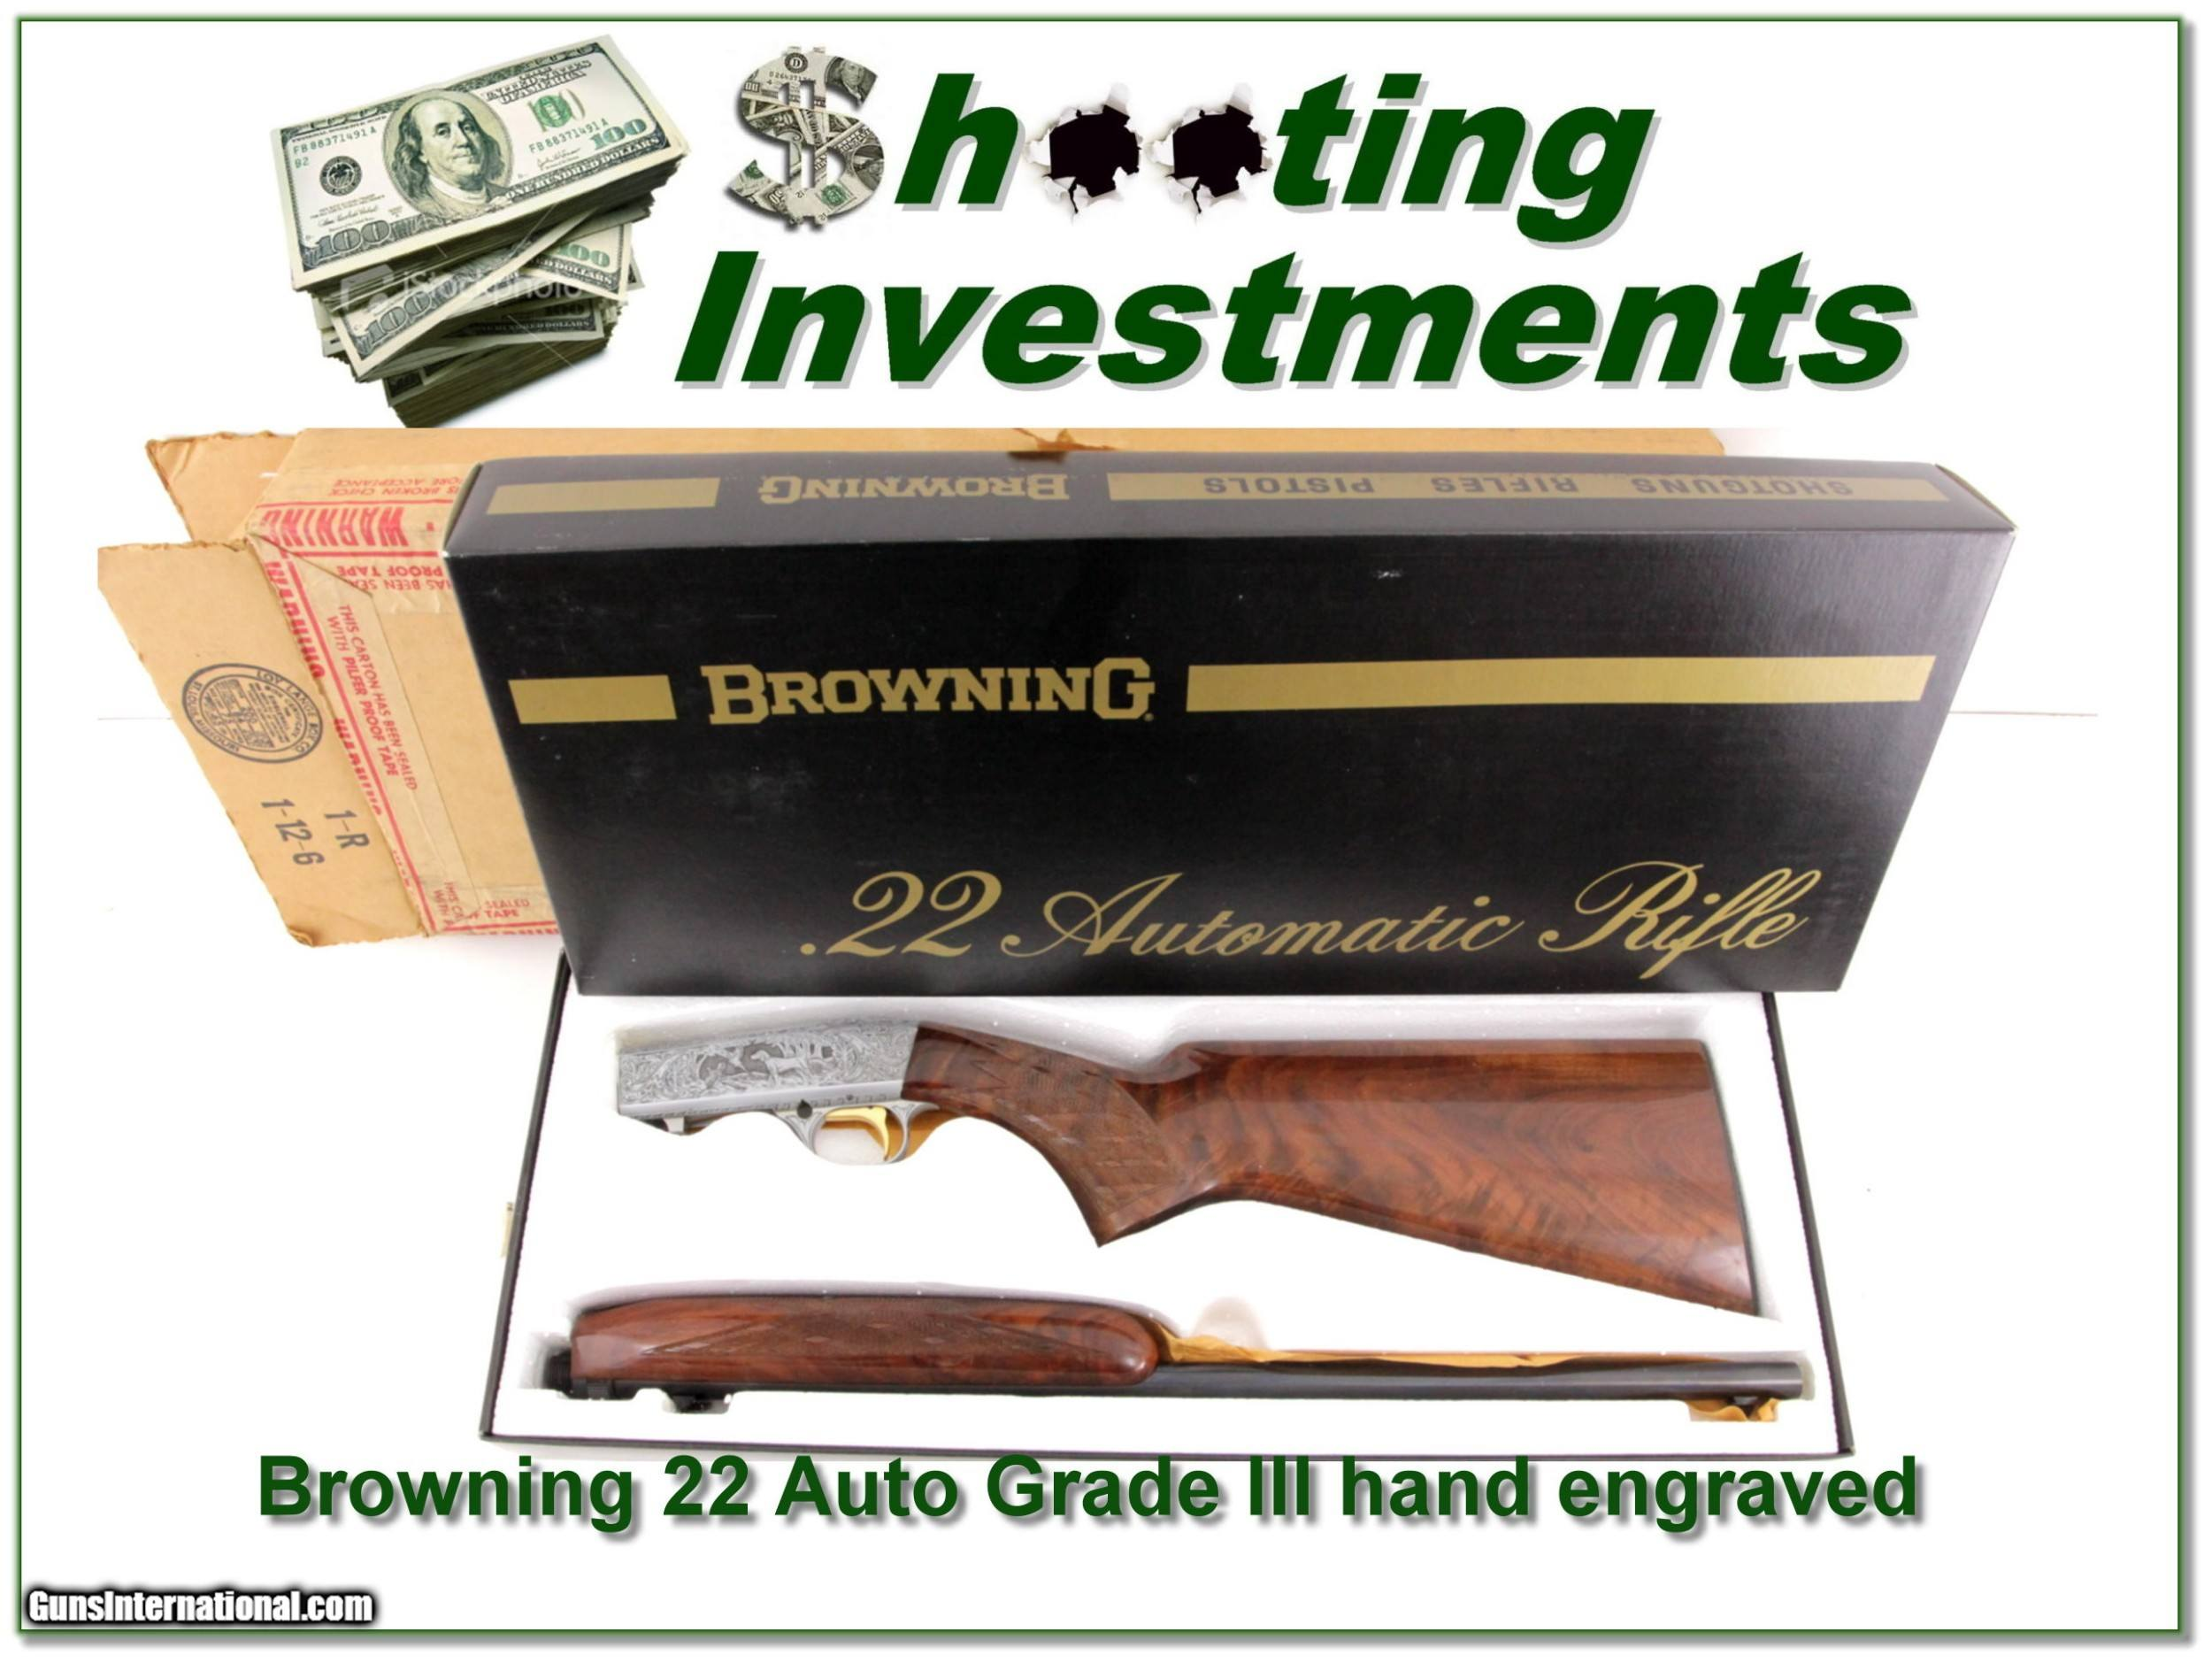 Browning 22 Auto Grade III hand engraved ANIB! for sale